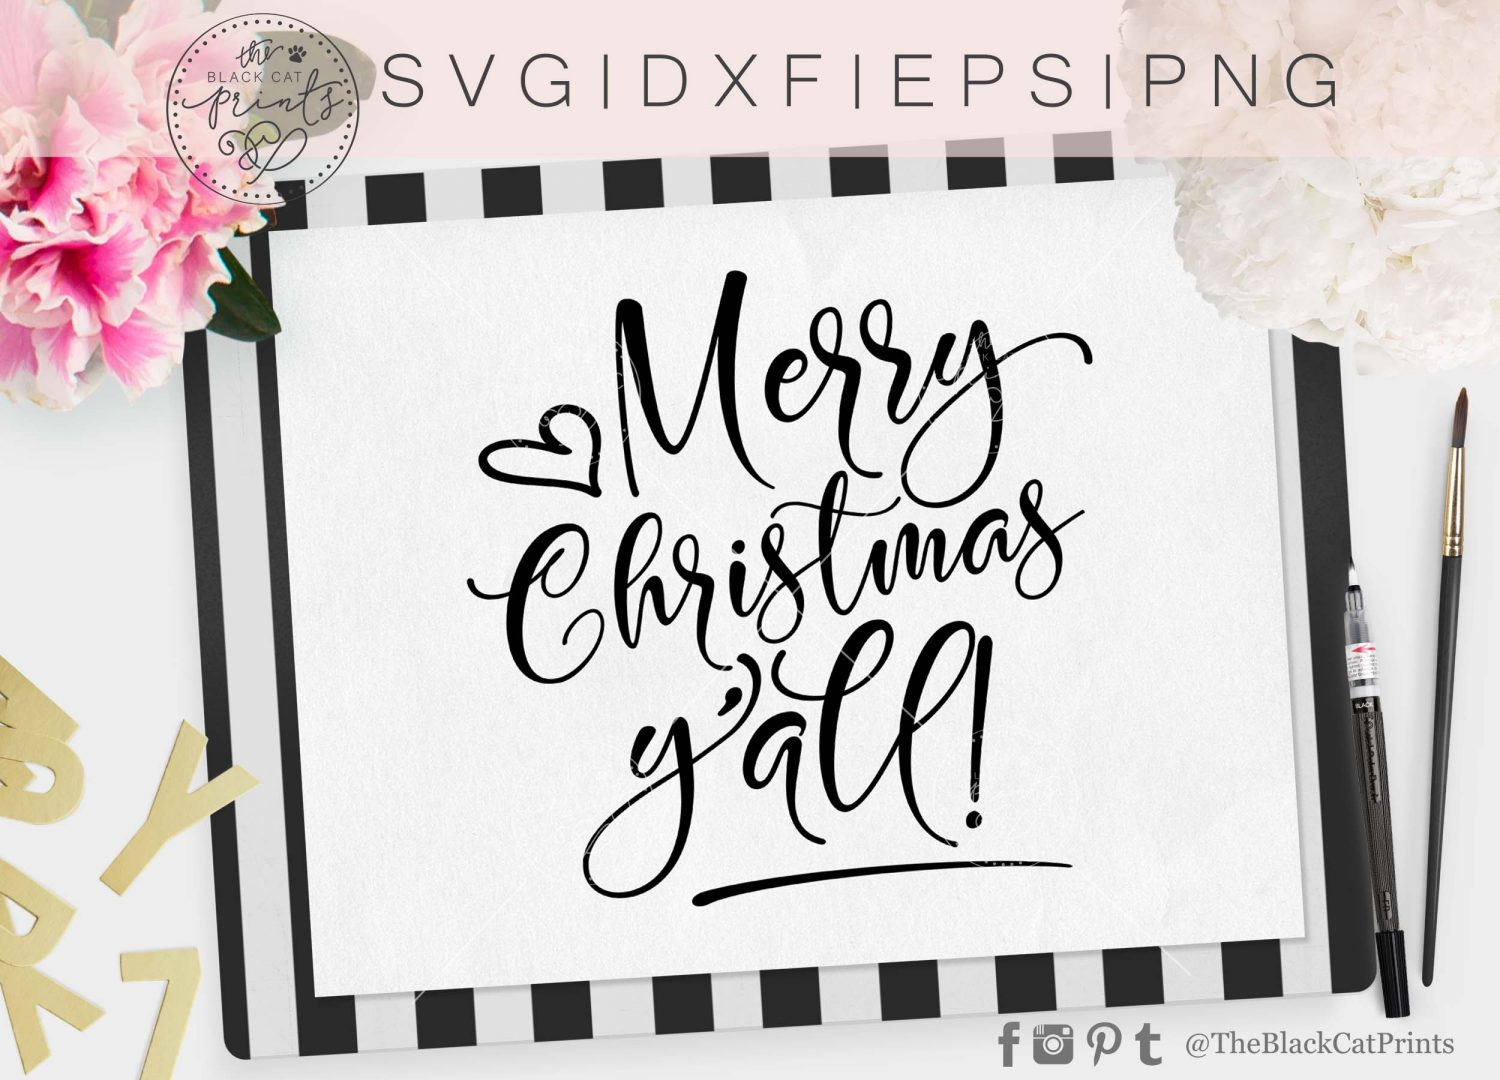 Merry Christmas Yall.Merry Christmas Yall Svg Dxf Png Eps